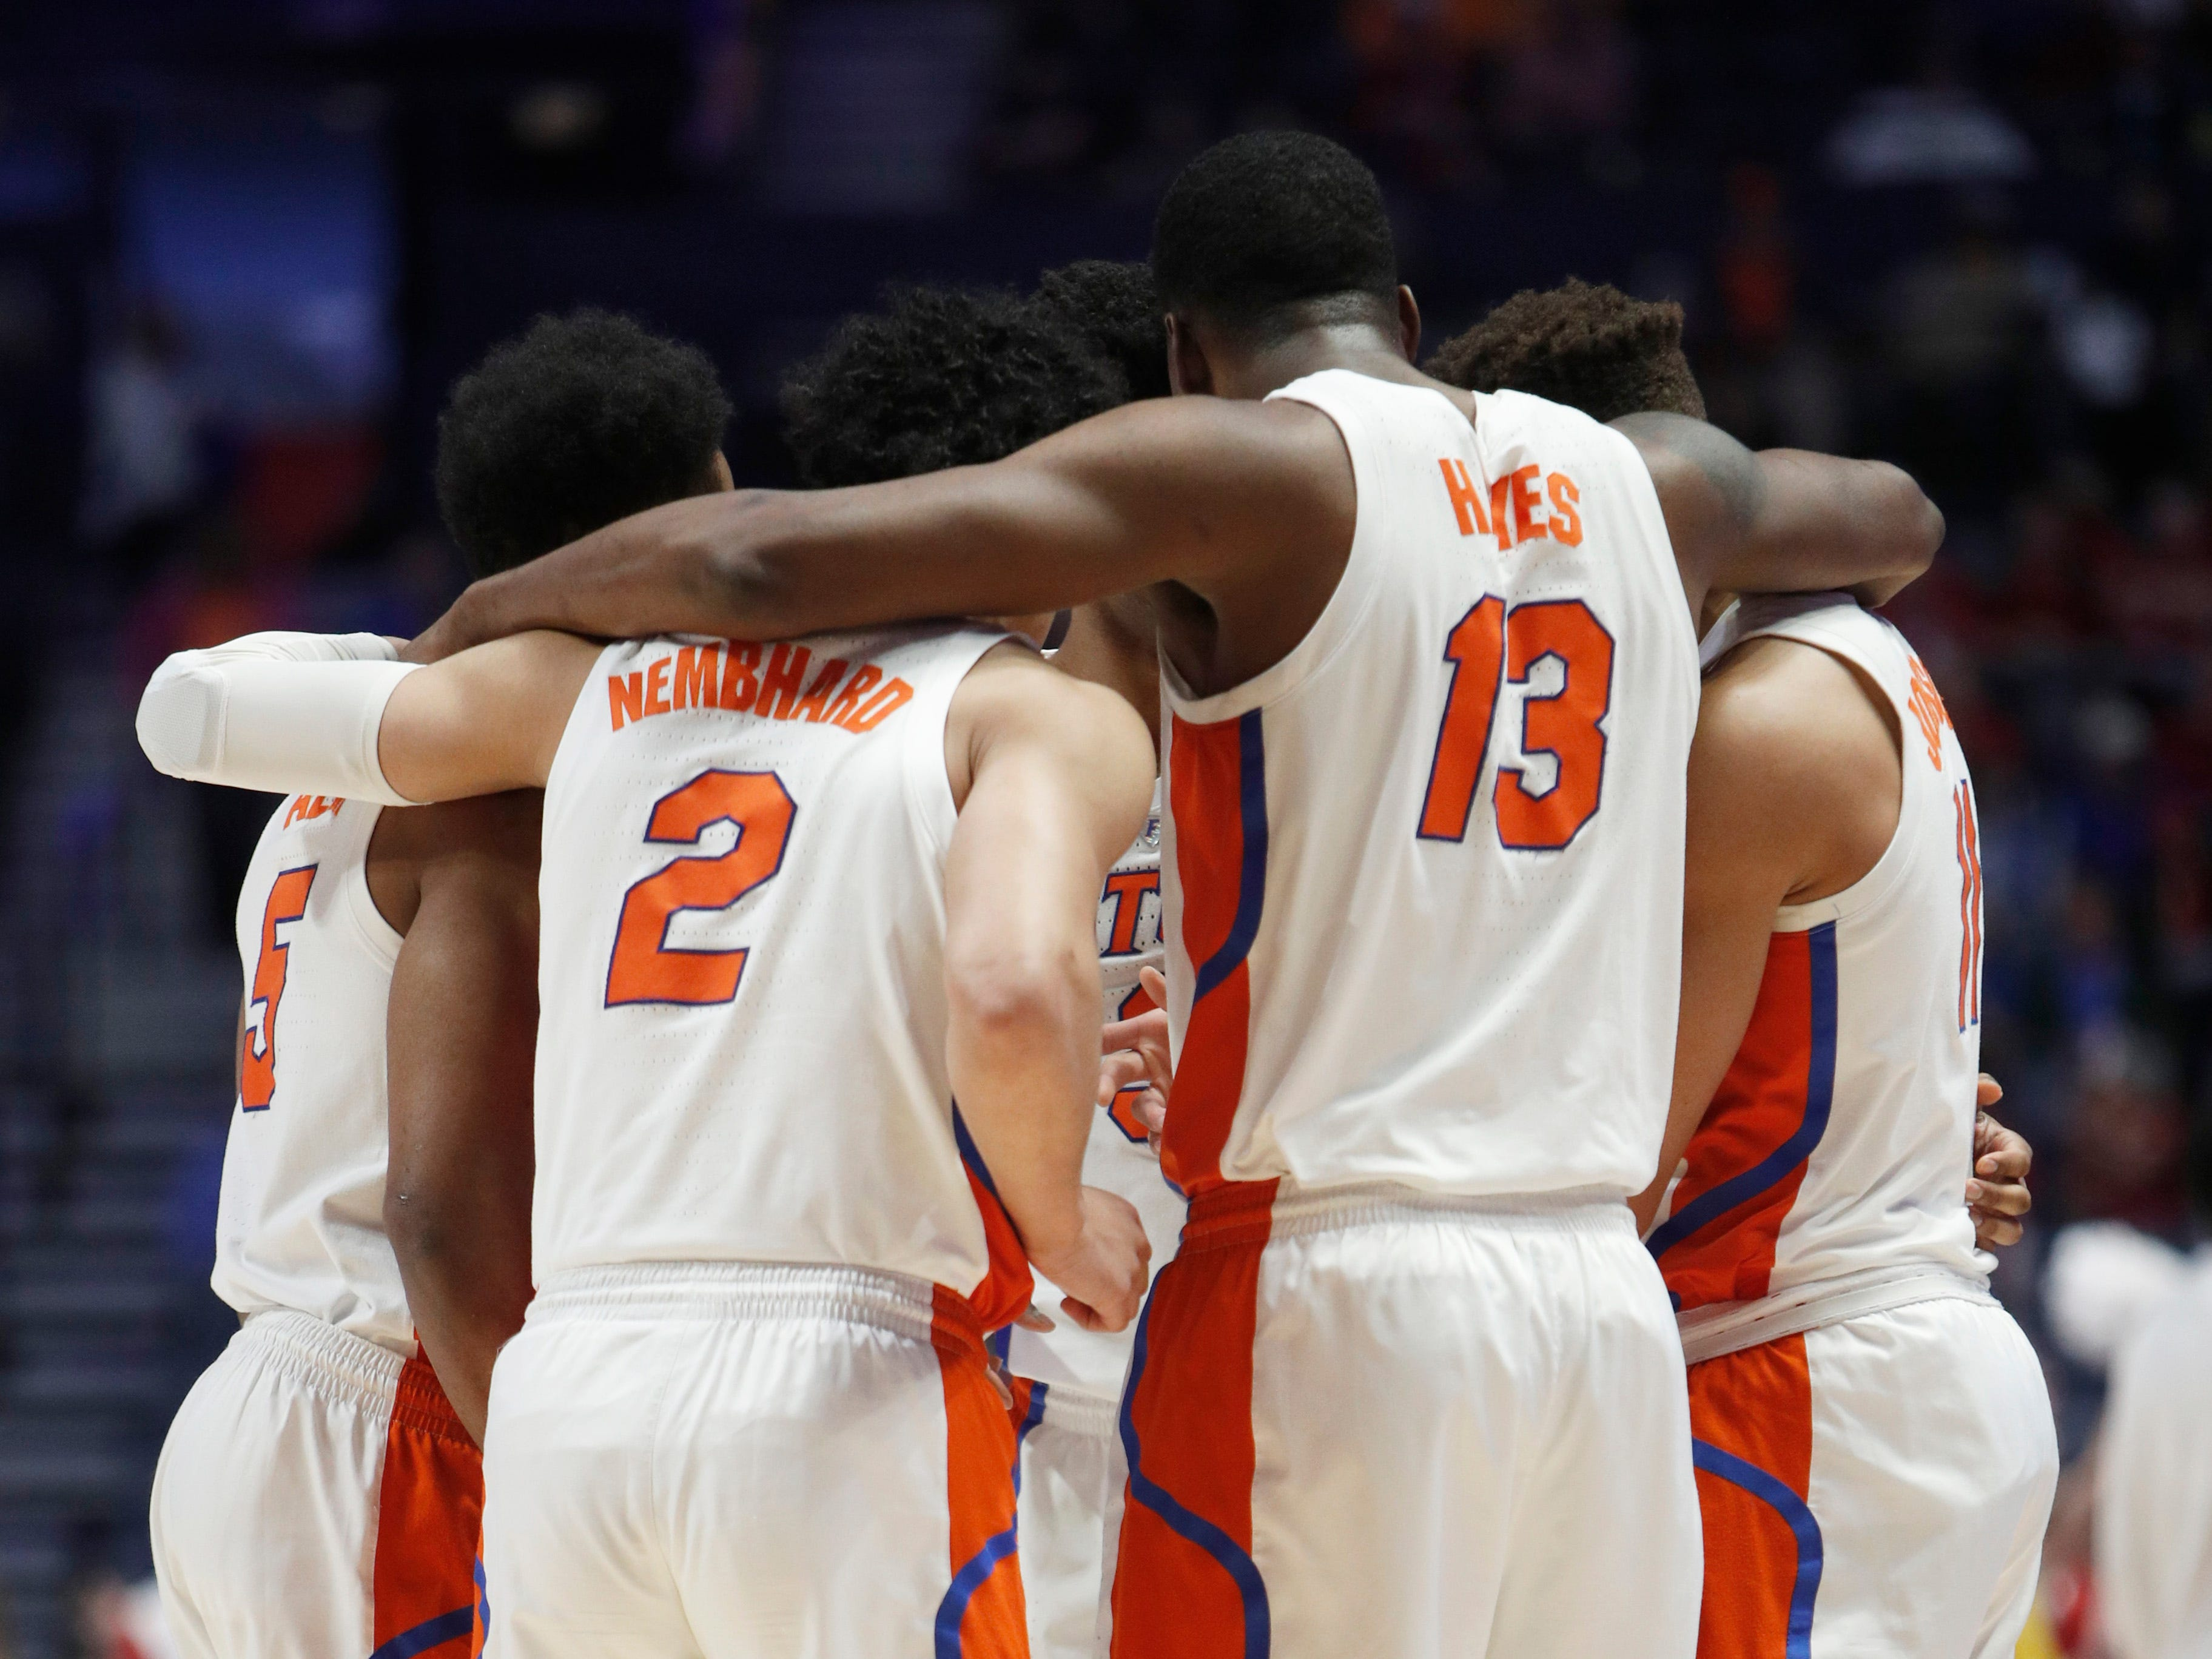 Florida players huddle at the start of the SEC Men's Basketball Tournament game at Bridgestone Arena in Nashville, Tenn., Thursday, March 14, 2019.